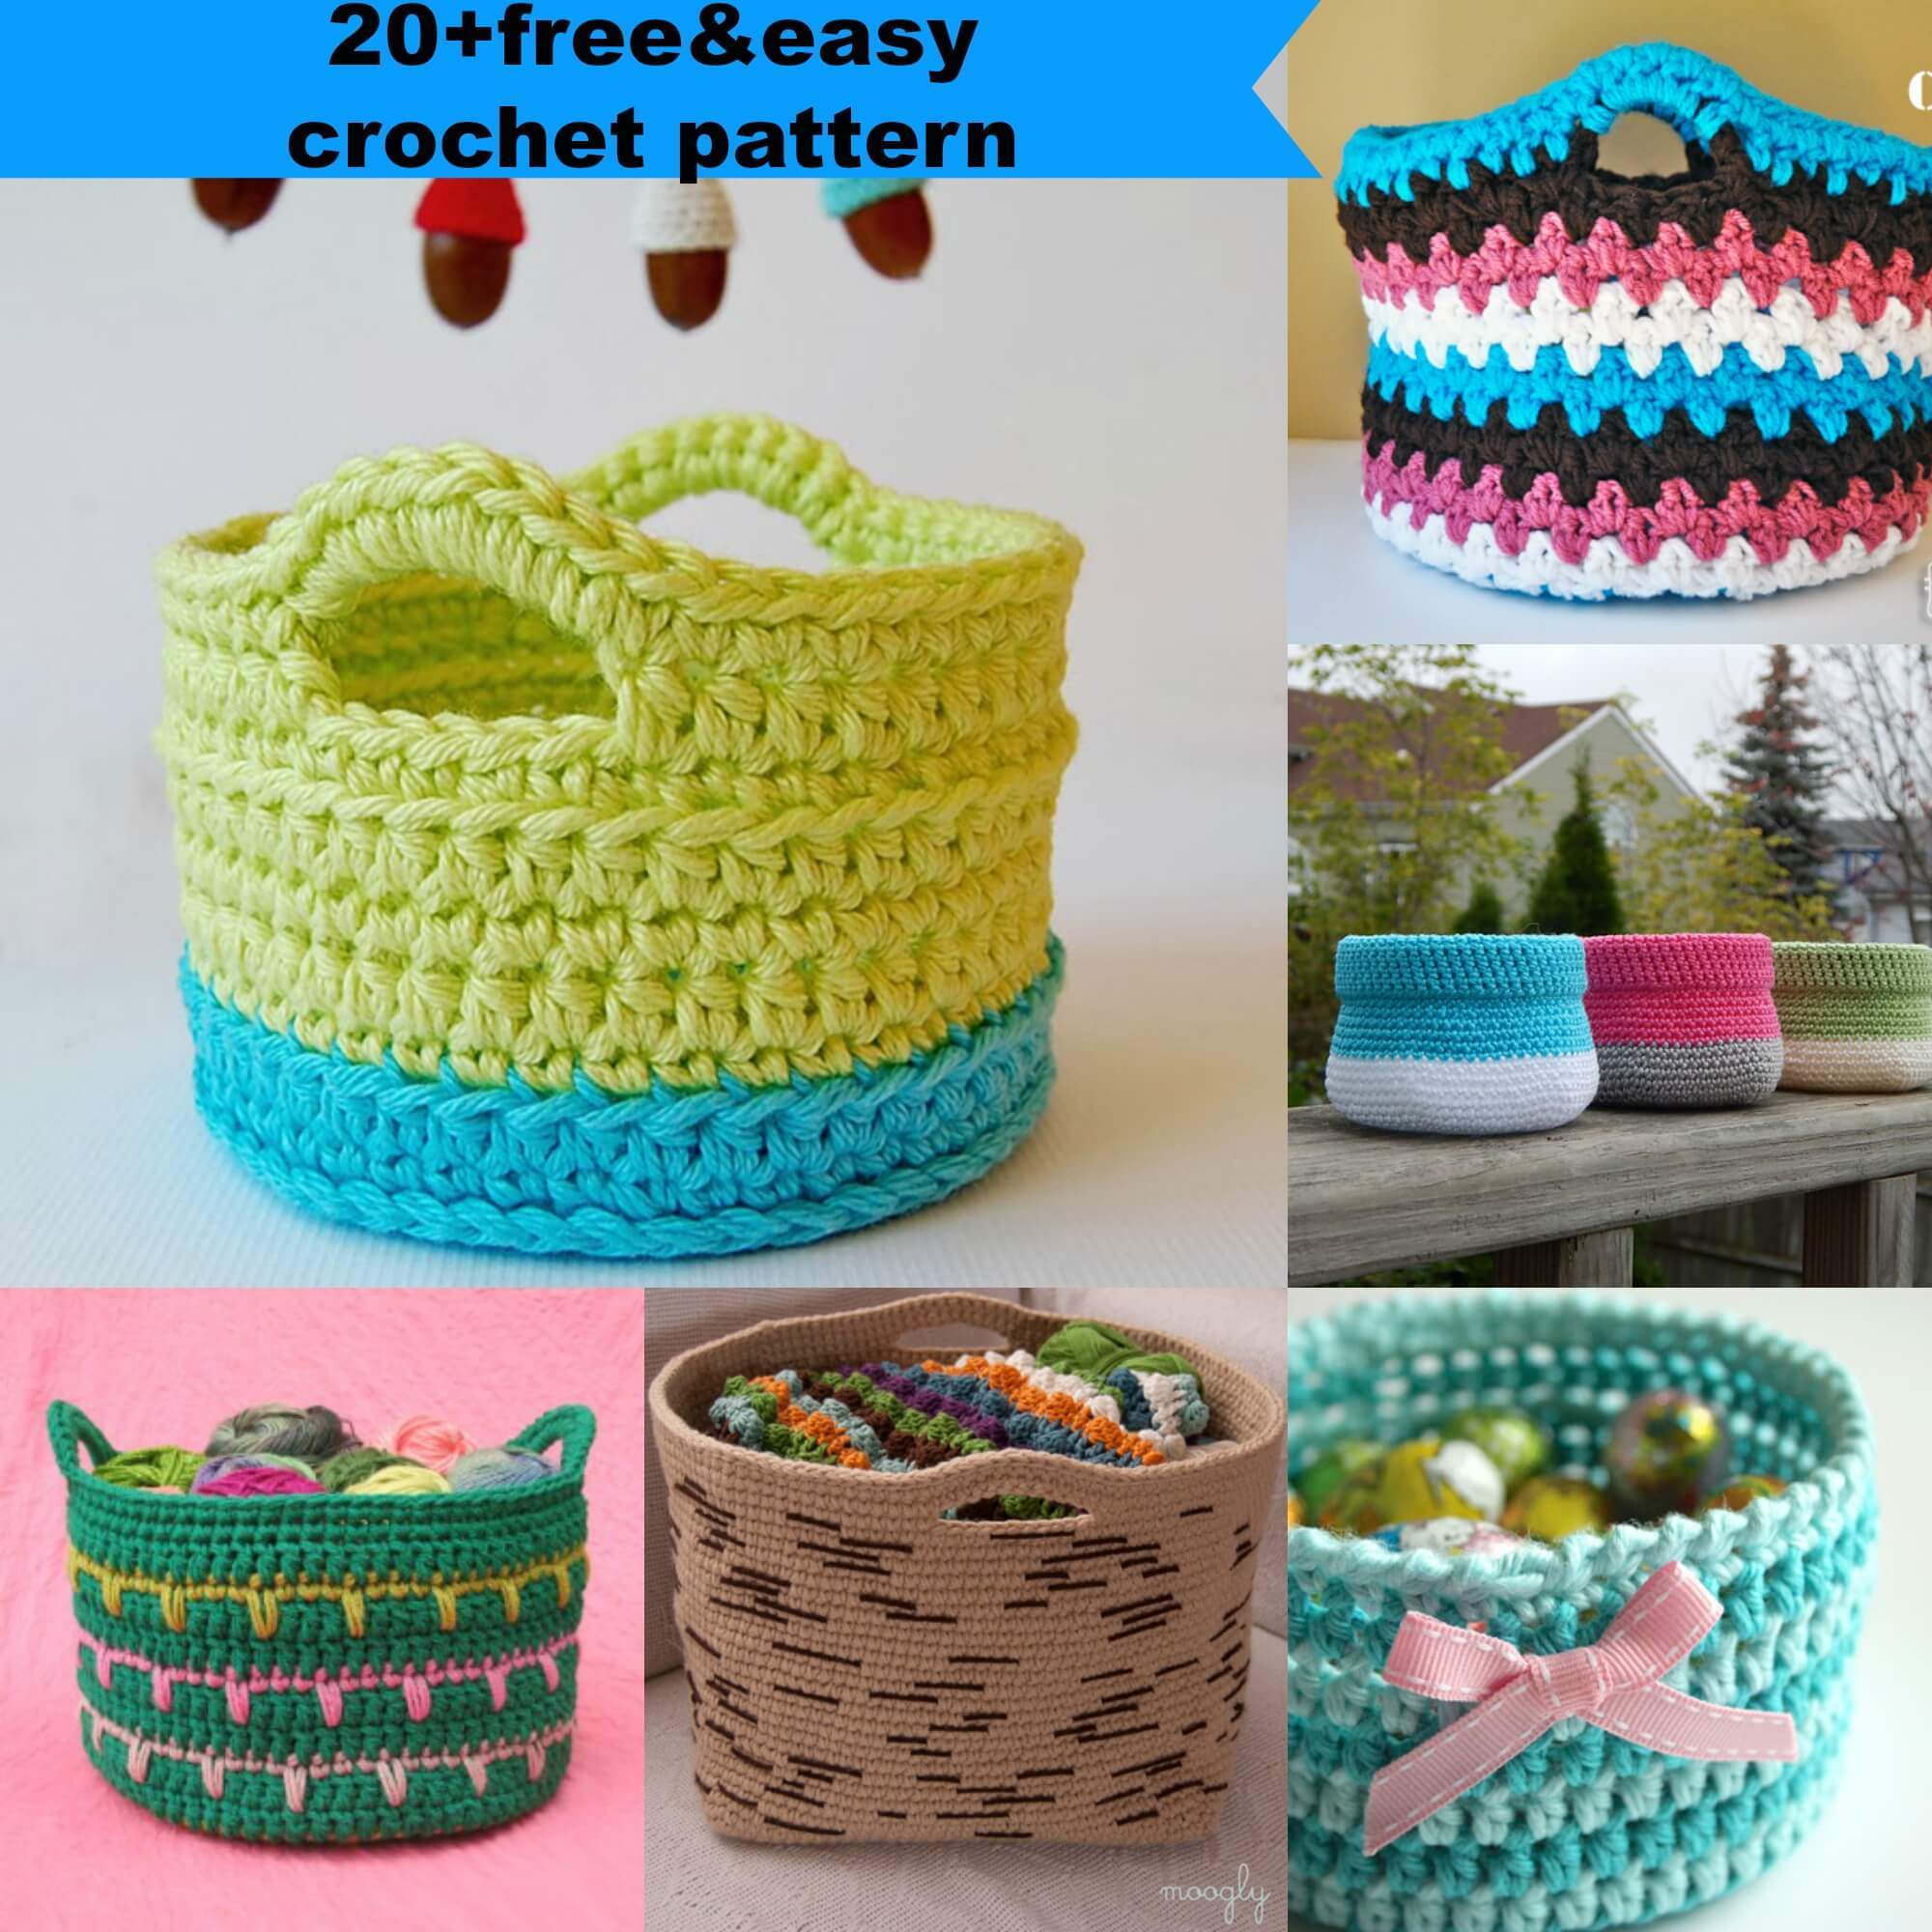 crochet basket pattern 23 free u0026easy crochet baskets patterns SAOIDBD